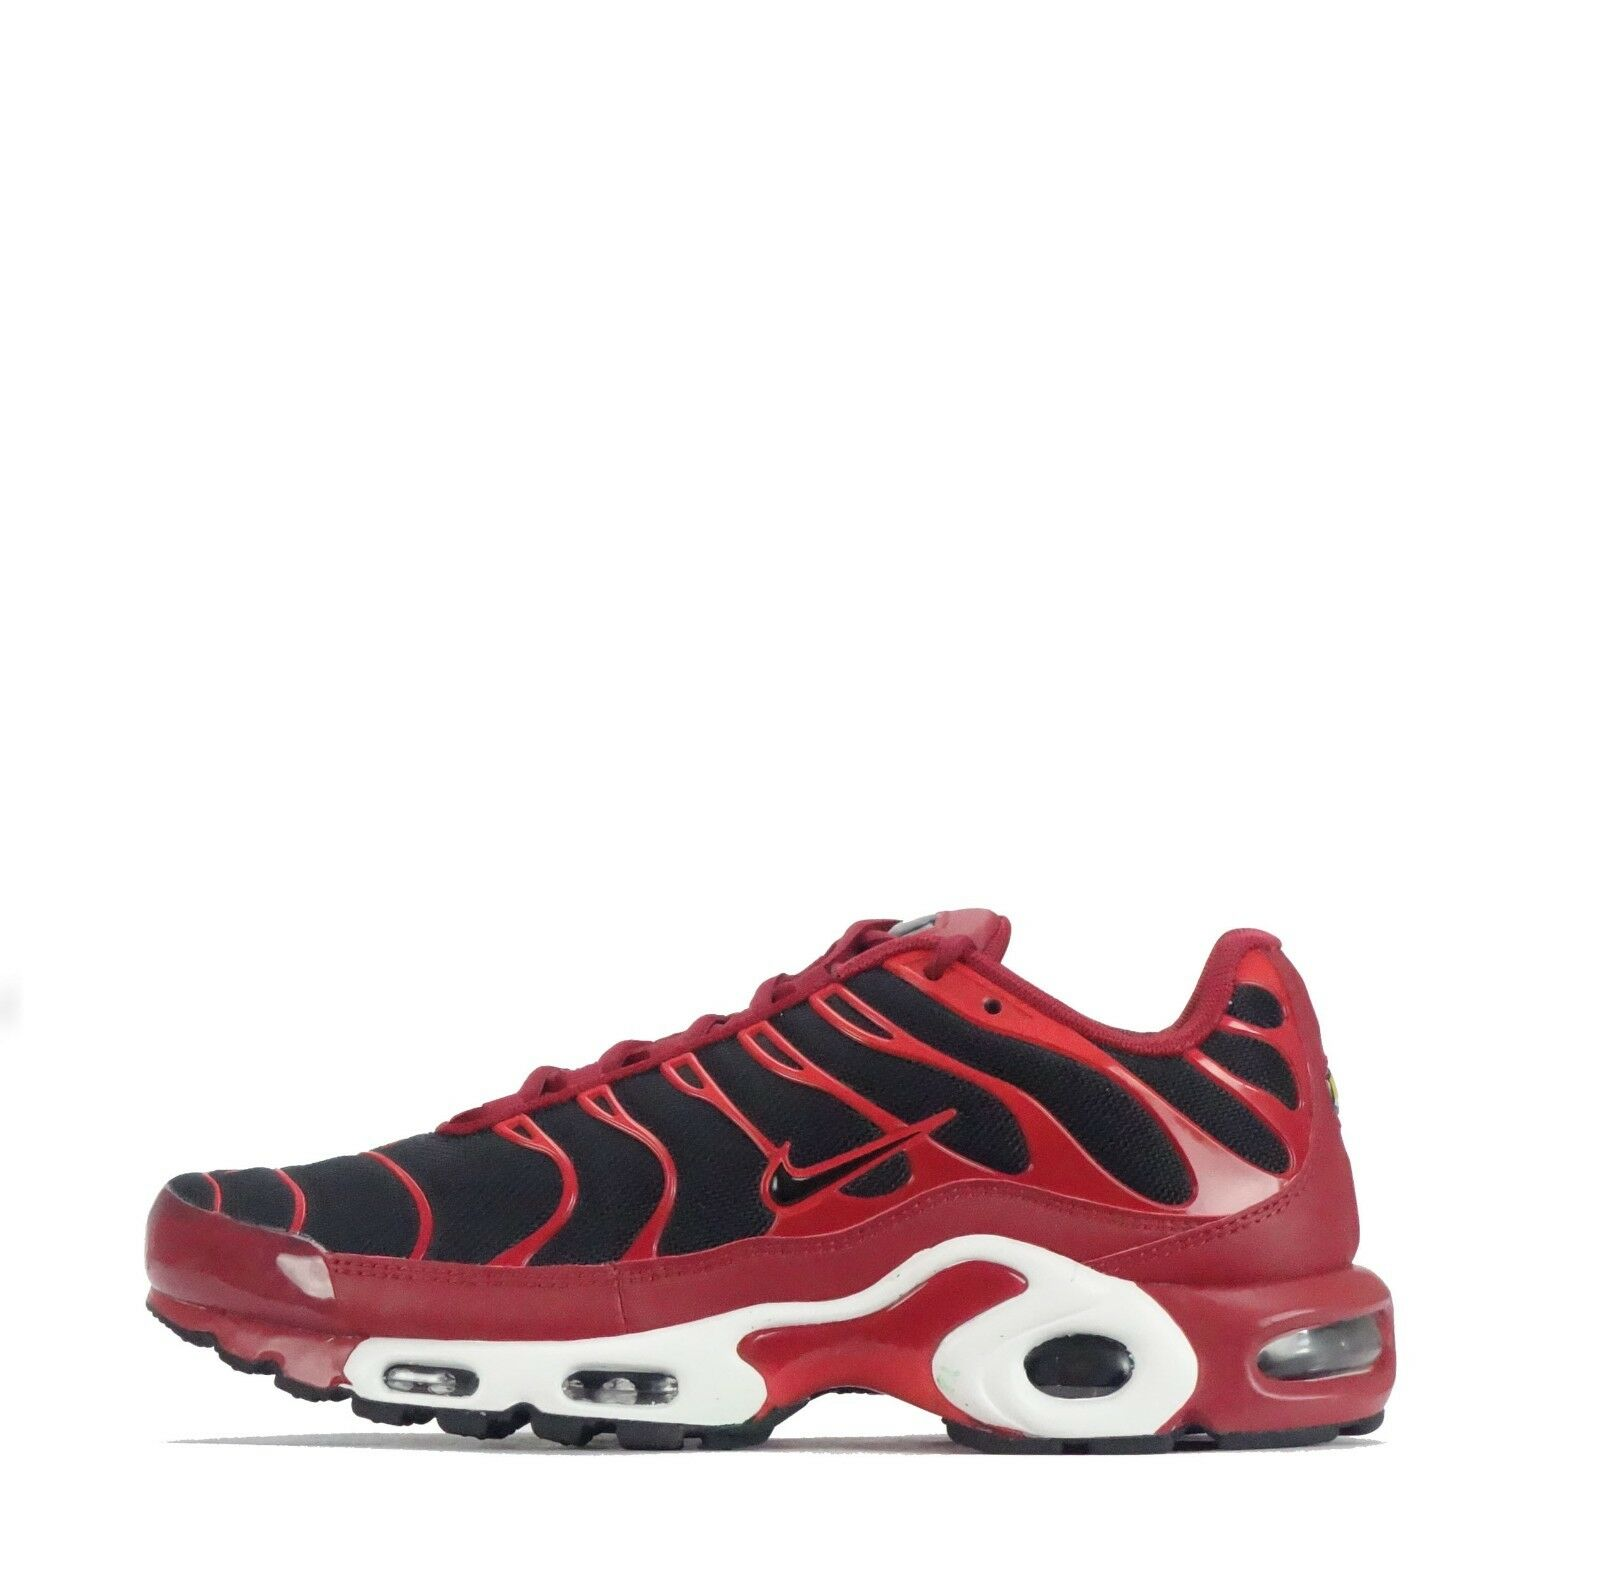 Nike Air Max Plus Tuned TN Mens Trainers in Tough Red Black